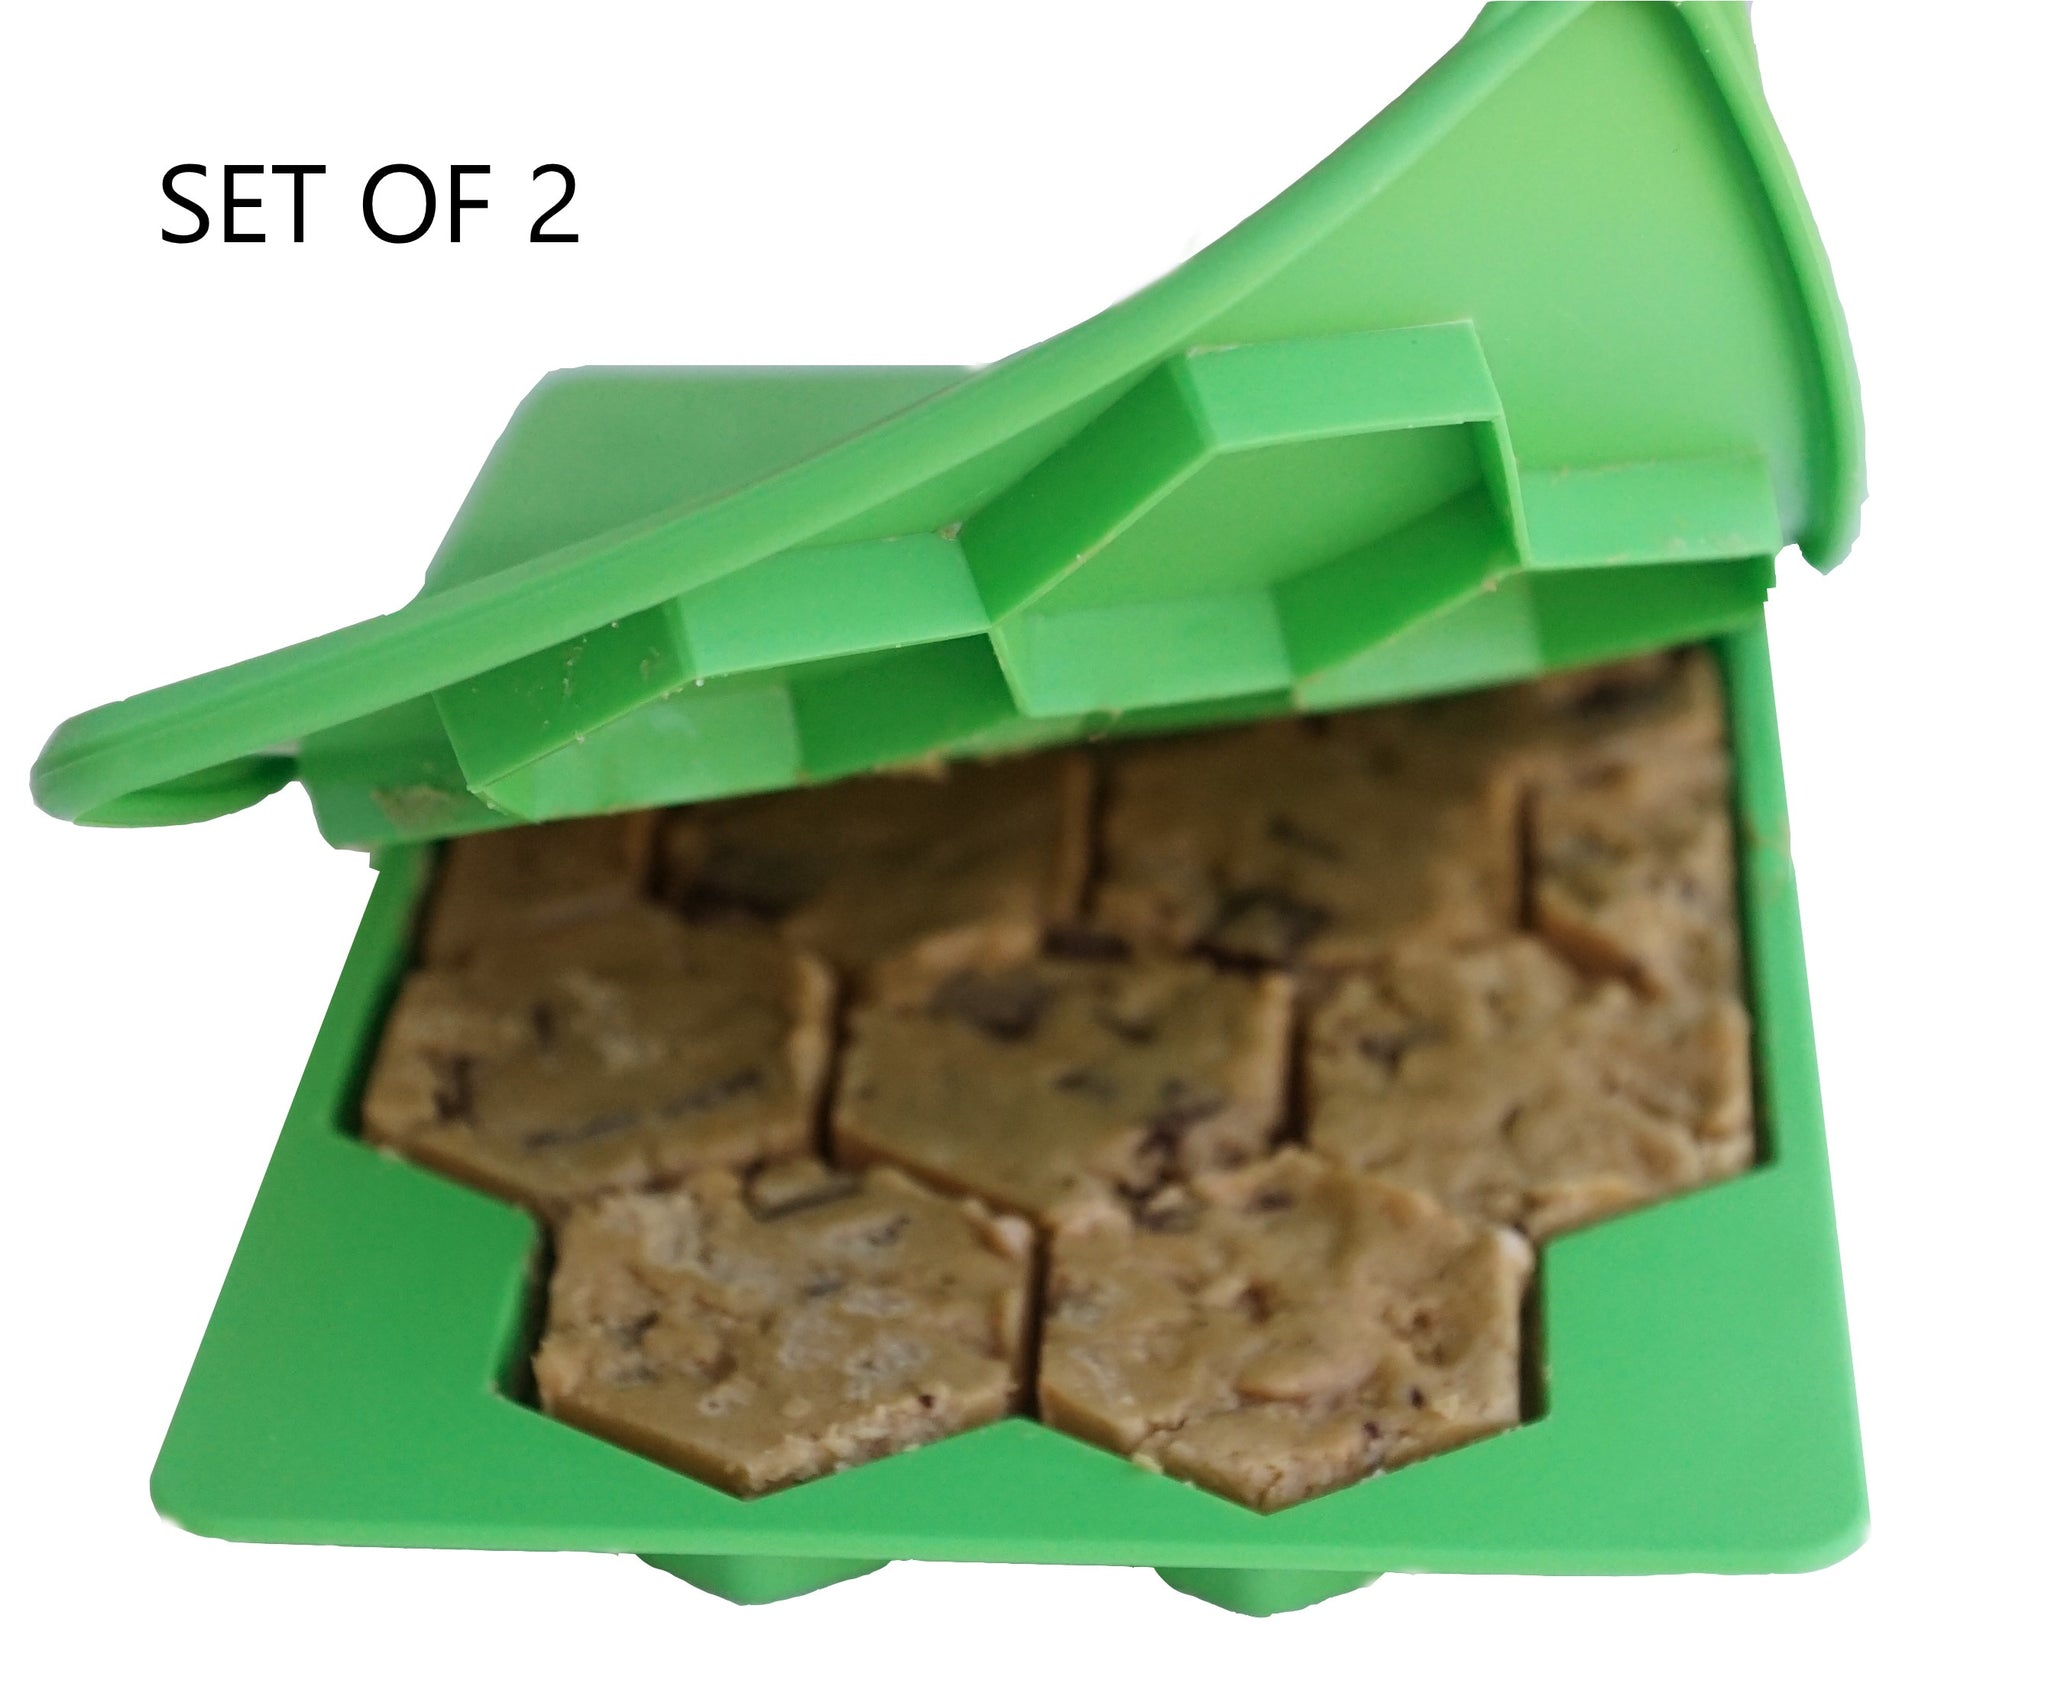 Opening a green Smart Cookie